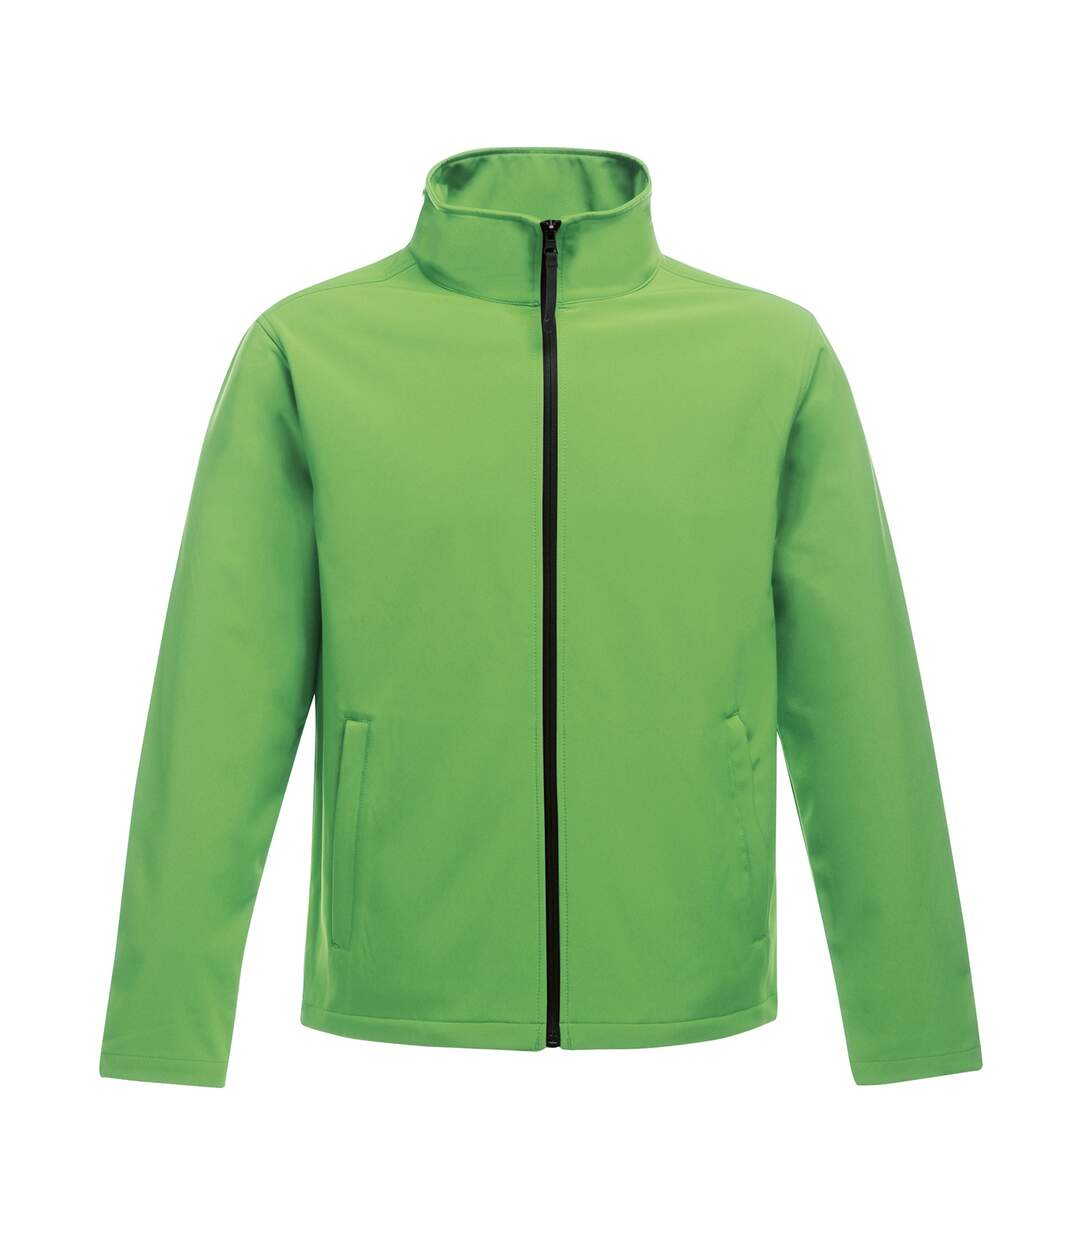 Regatta Standout Mens Ablaze Printable Softshell Jacket (Extreme Green/Black) - UTRW6353